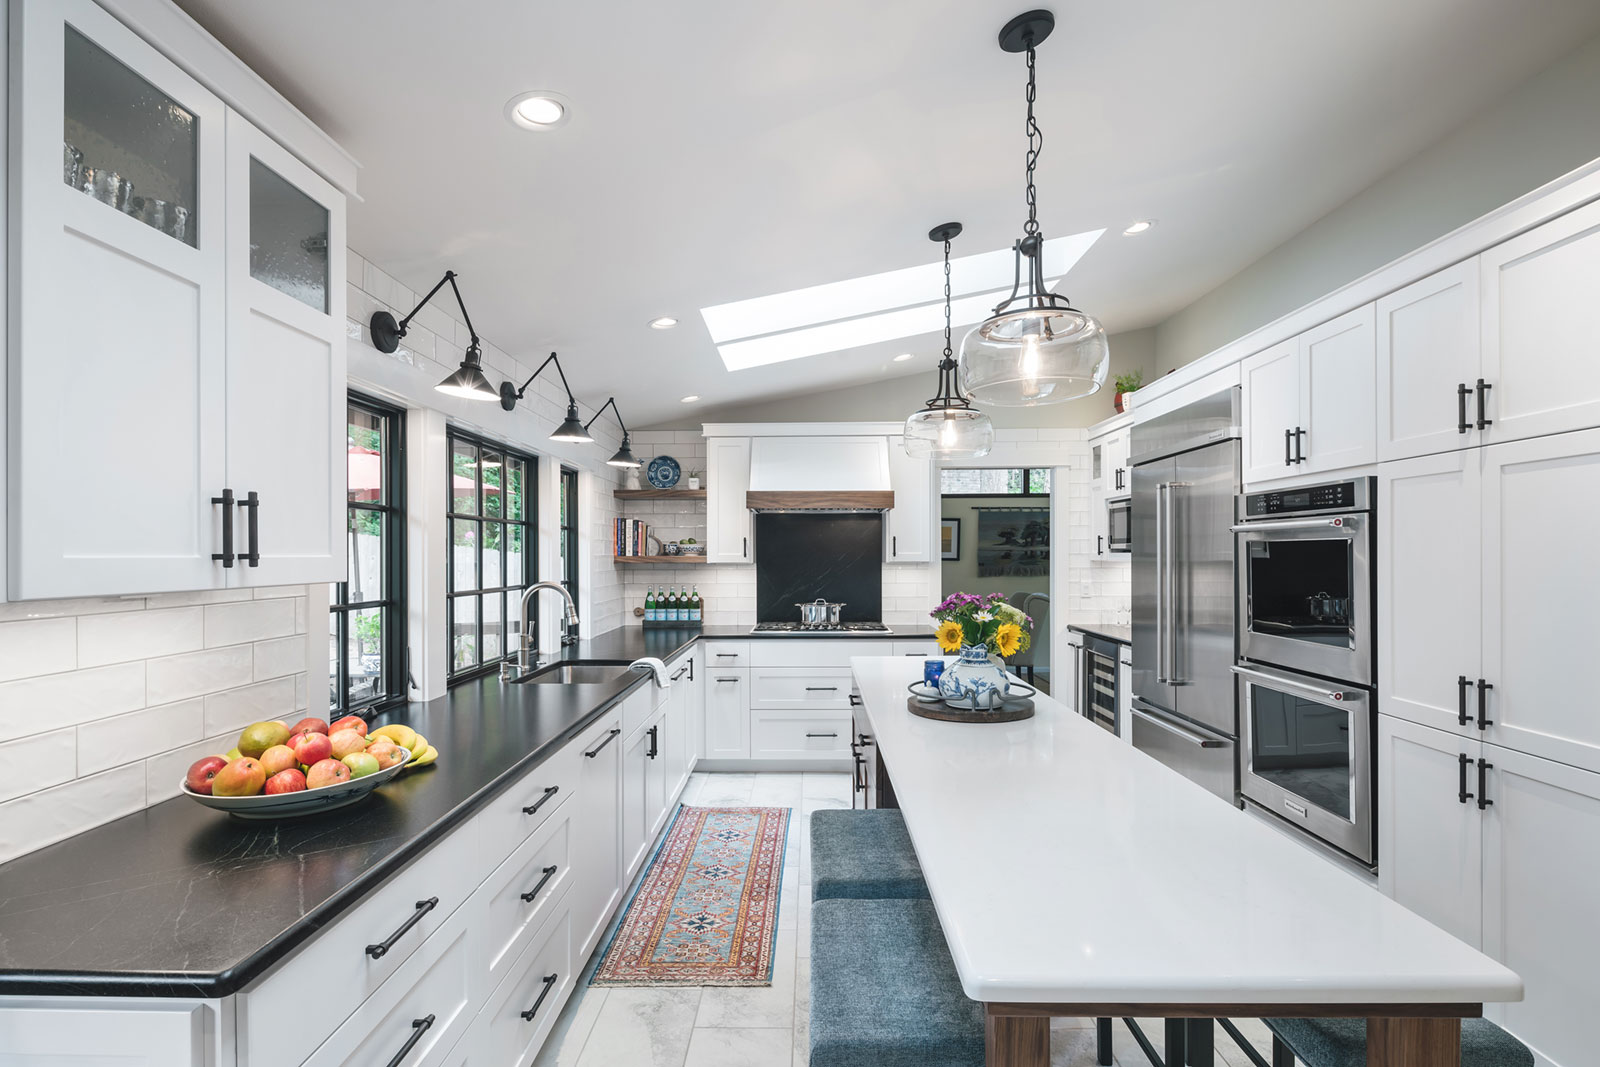 kitchen remodel Corvallis, Oregon - Henderer Design + Build